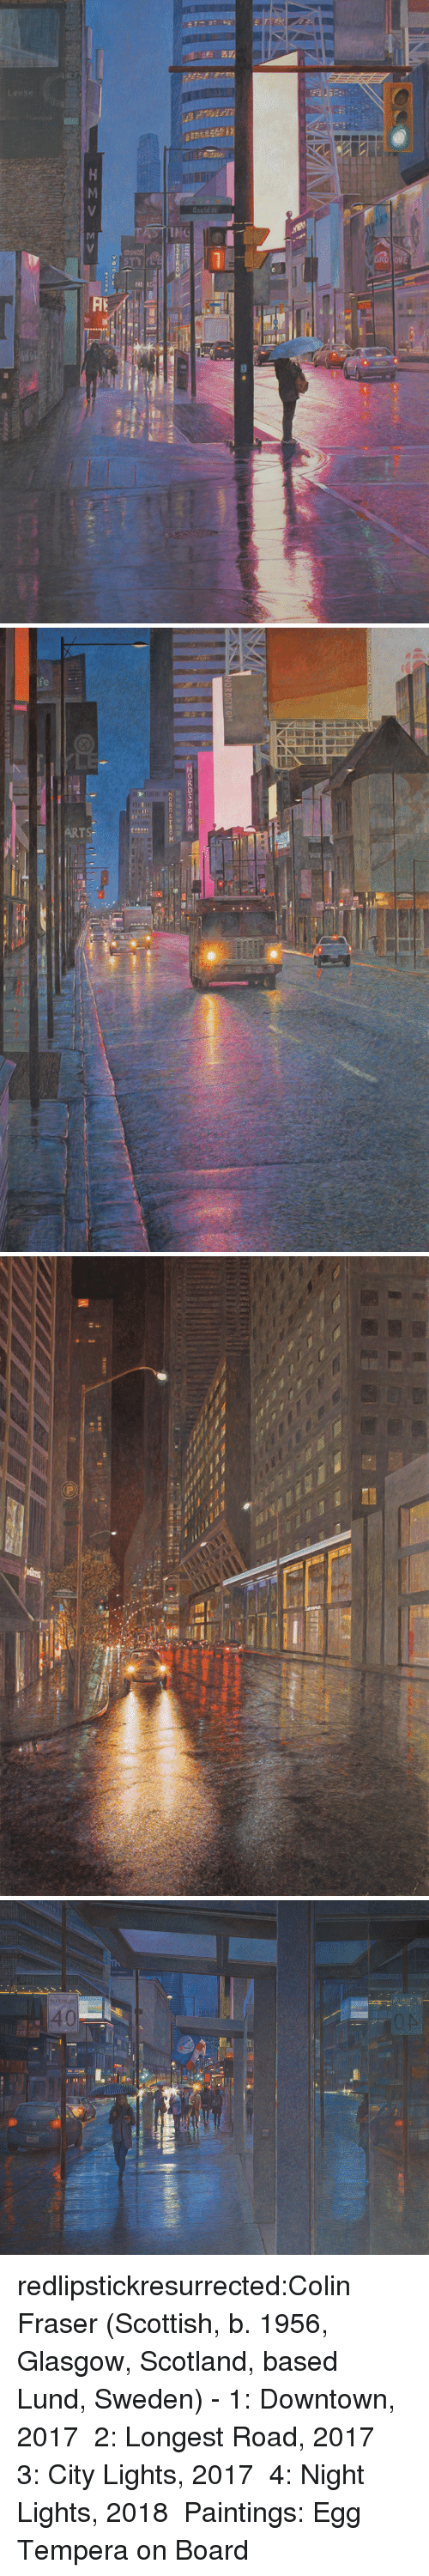 Paintings, Tumblr, and Blog: ORDSTRO redlipstickresurrected:Colin Fraser (Scottish, b. 1956, Glasgow, Scotland, based Lund, Sweden) - 1: Downtown, 2017  2: Longest Road, 2017  3: City Lights, 2017  4: Night Lights, 2018  Paintings: Egg Tempera on Board